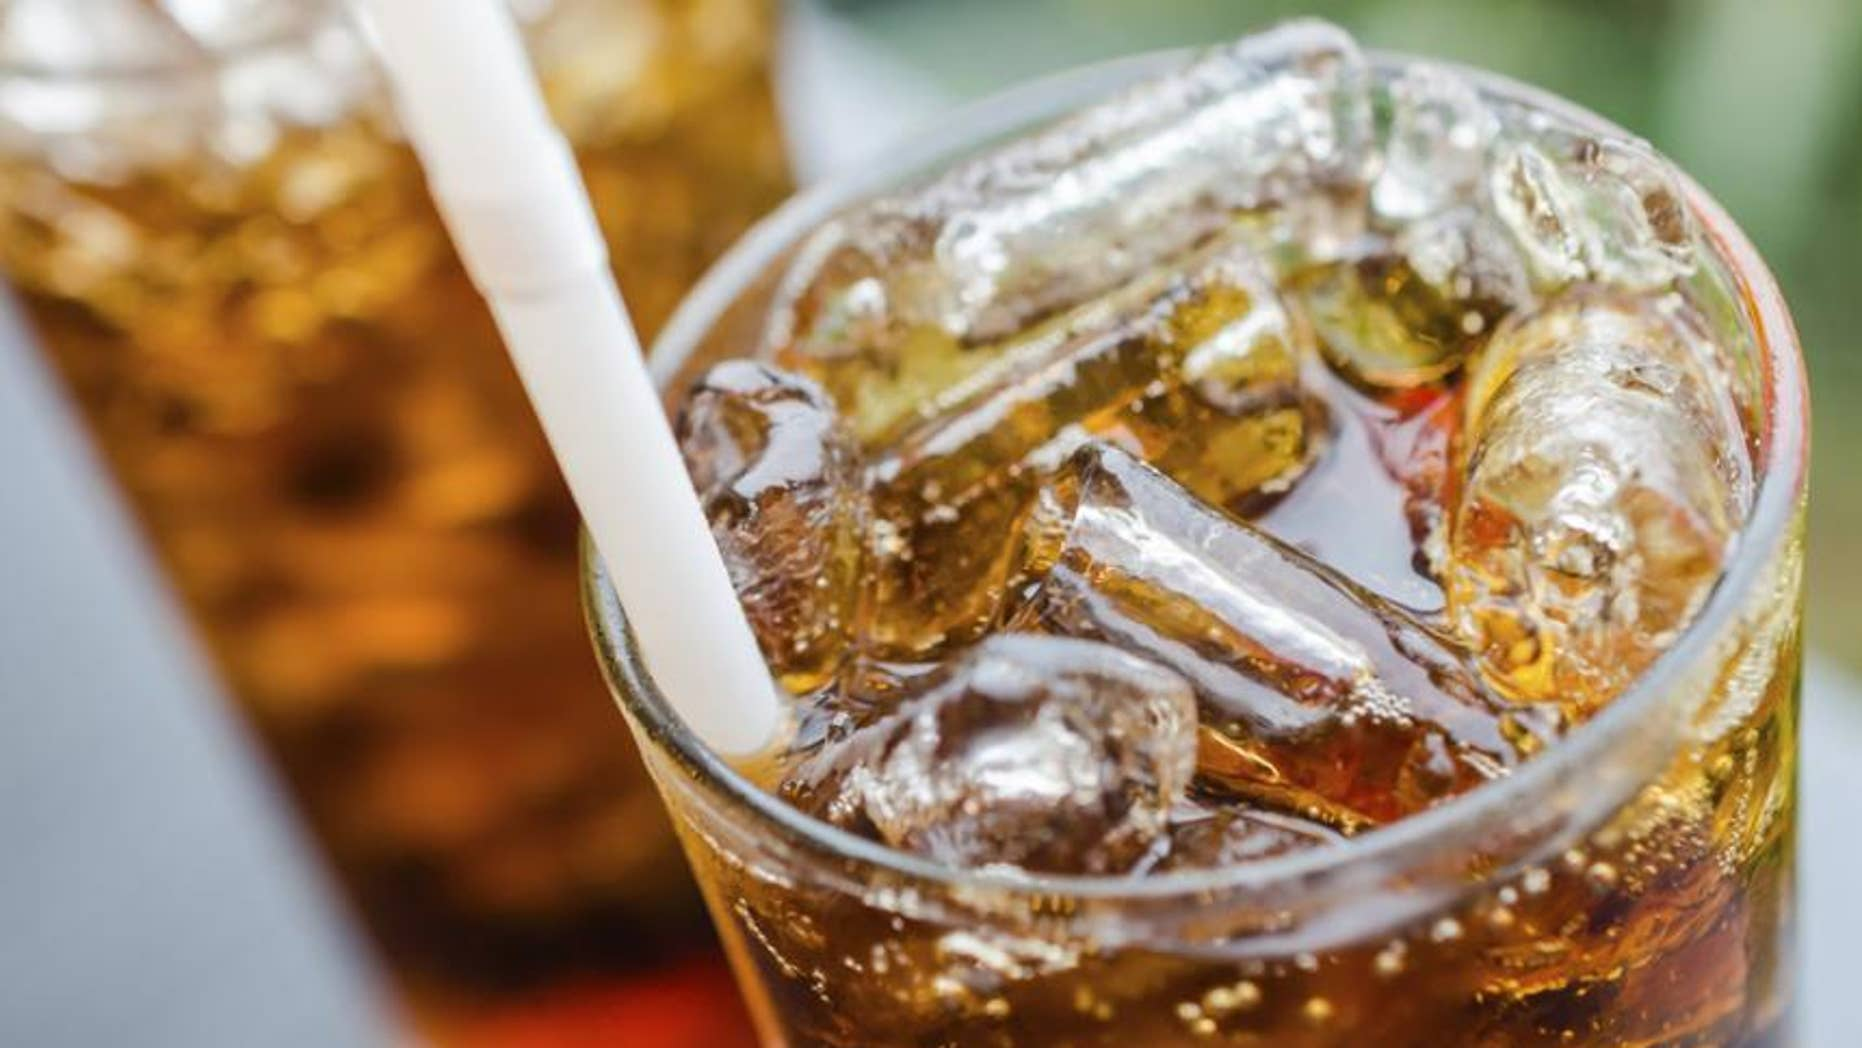 If you're partial to a can of Pepsi Max at lunch, or enjoy a splash of Coke Zero with your favorite rum — you might want to put that drink back on ice.